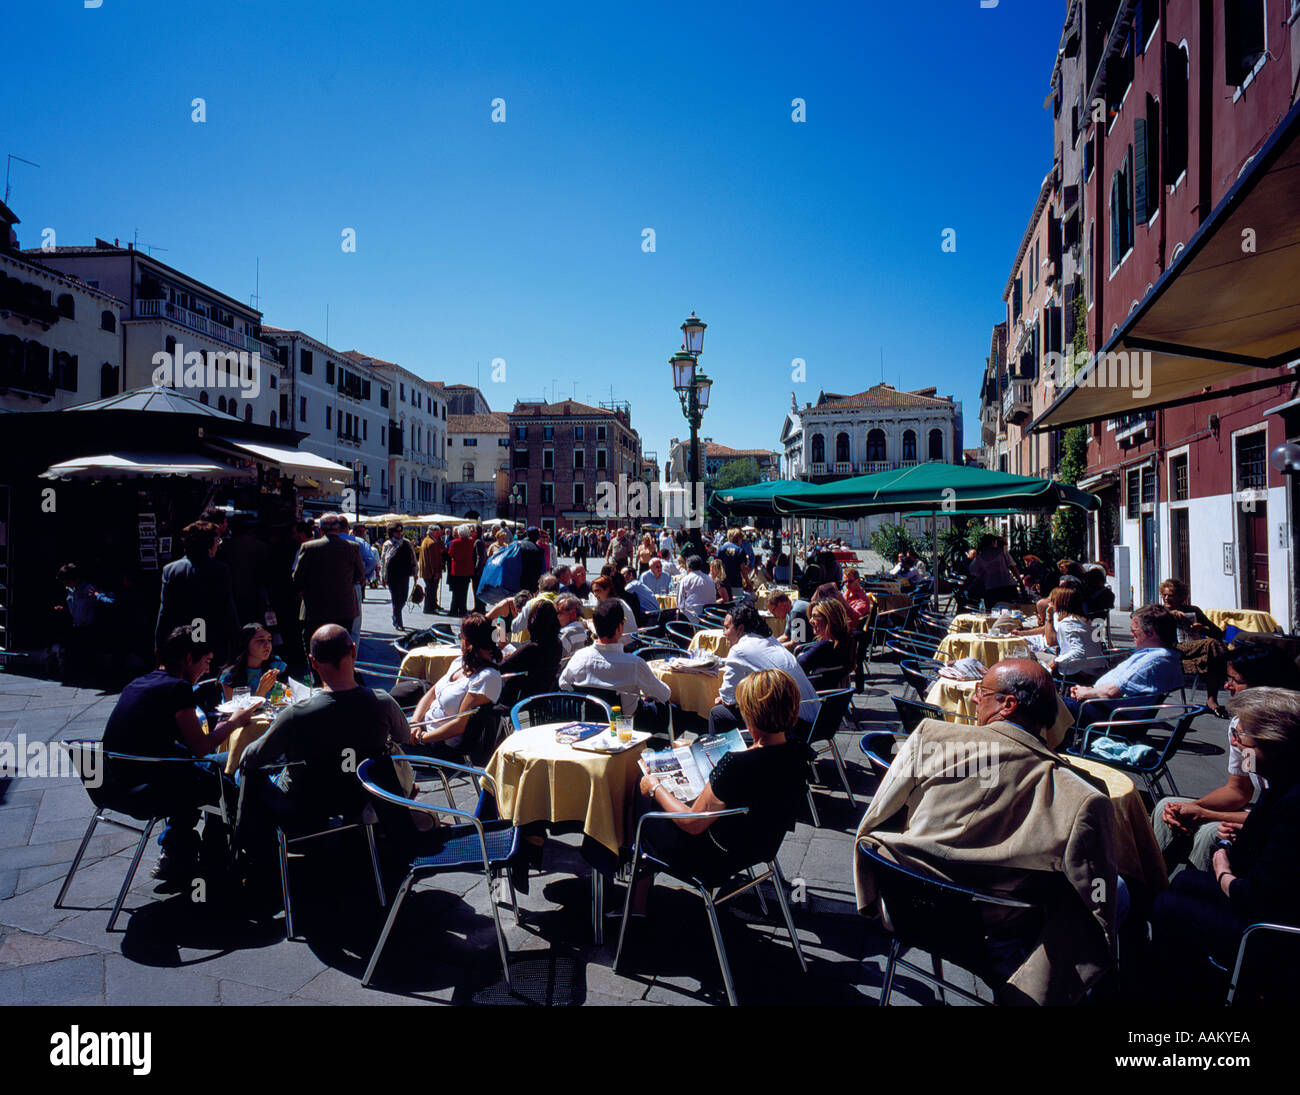 restaurant at Campo San Stefano, Venice, UNESCO World Heritage Site, Italy,  Europe. Photo by Willy Matheisl - Stock Image